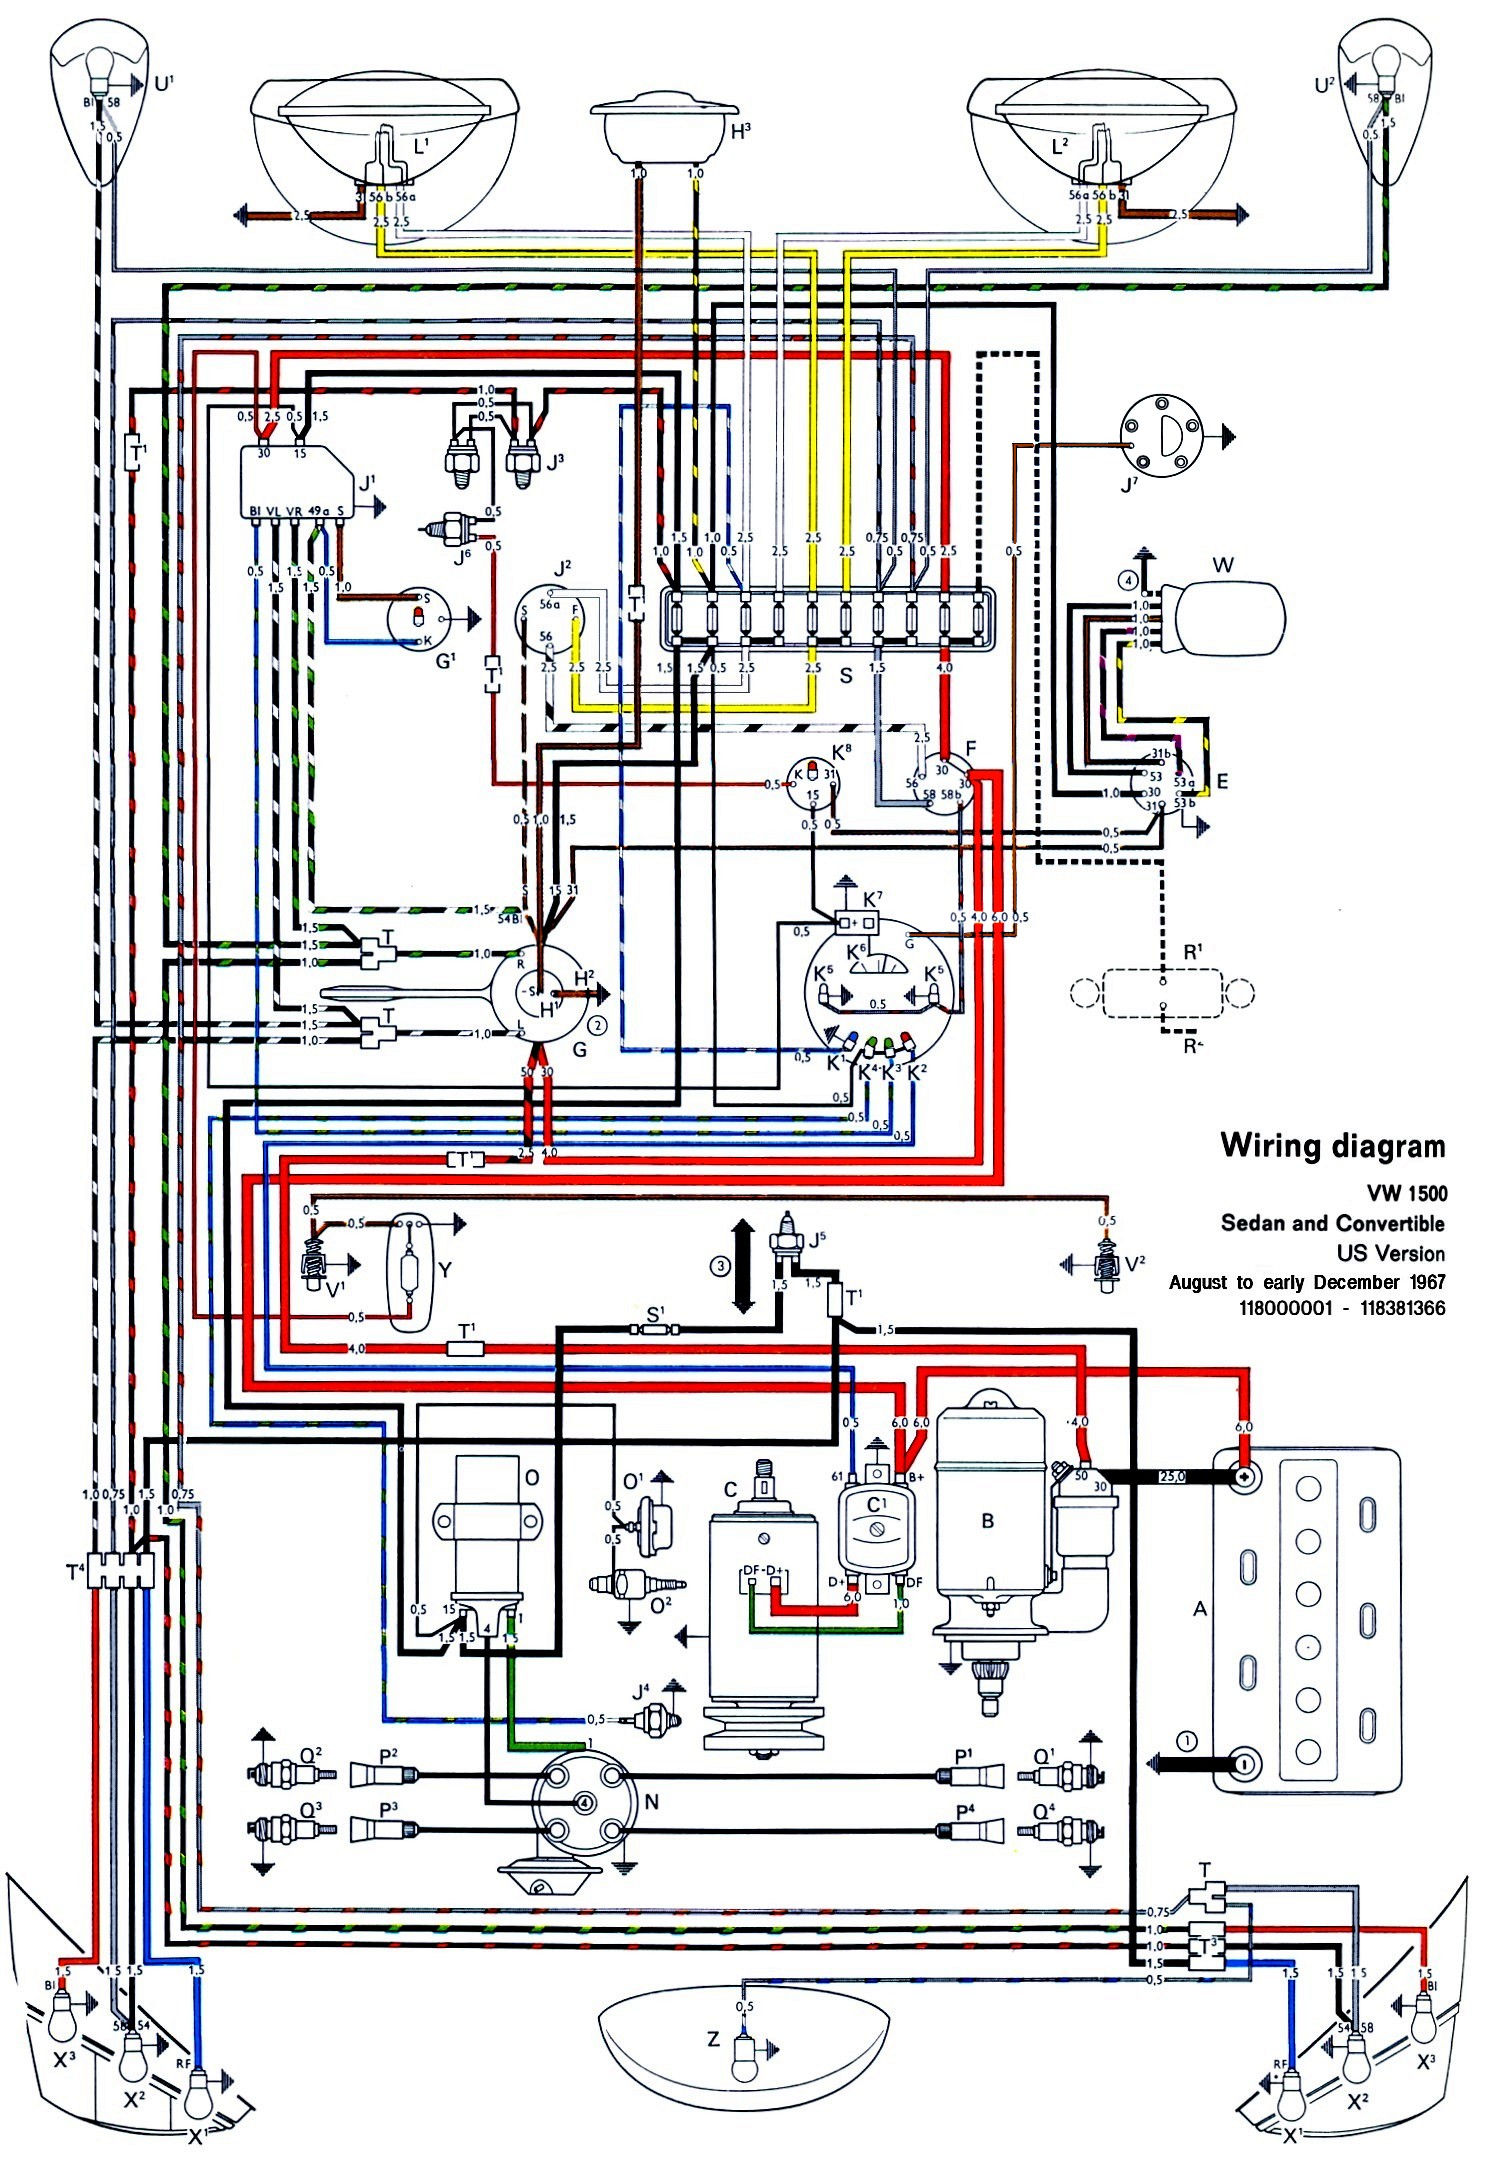 thesamba.com :: type 1 wiring diagrams 70 cuda wiring diagram 70 vw wiring diagram